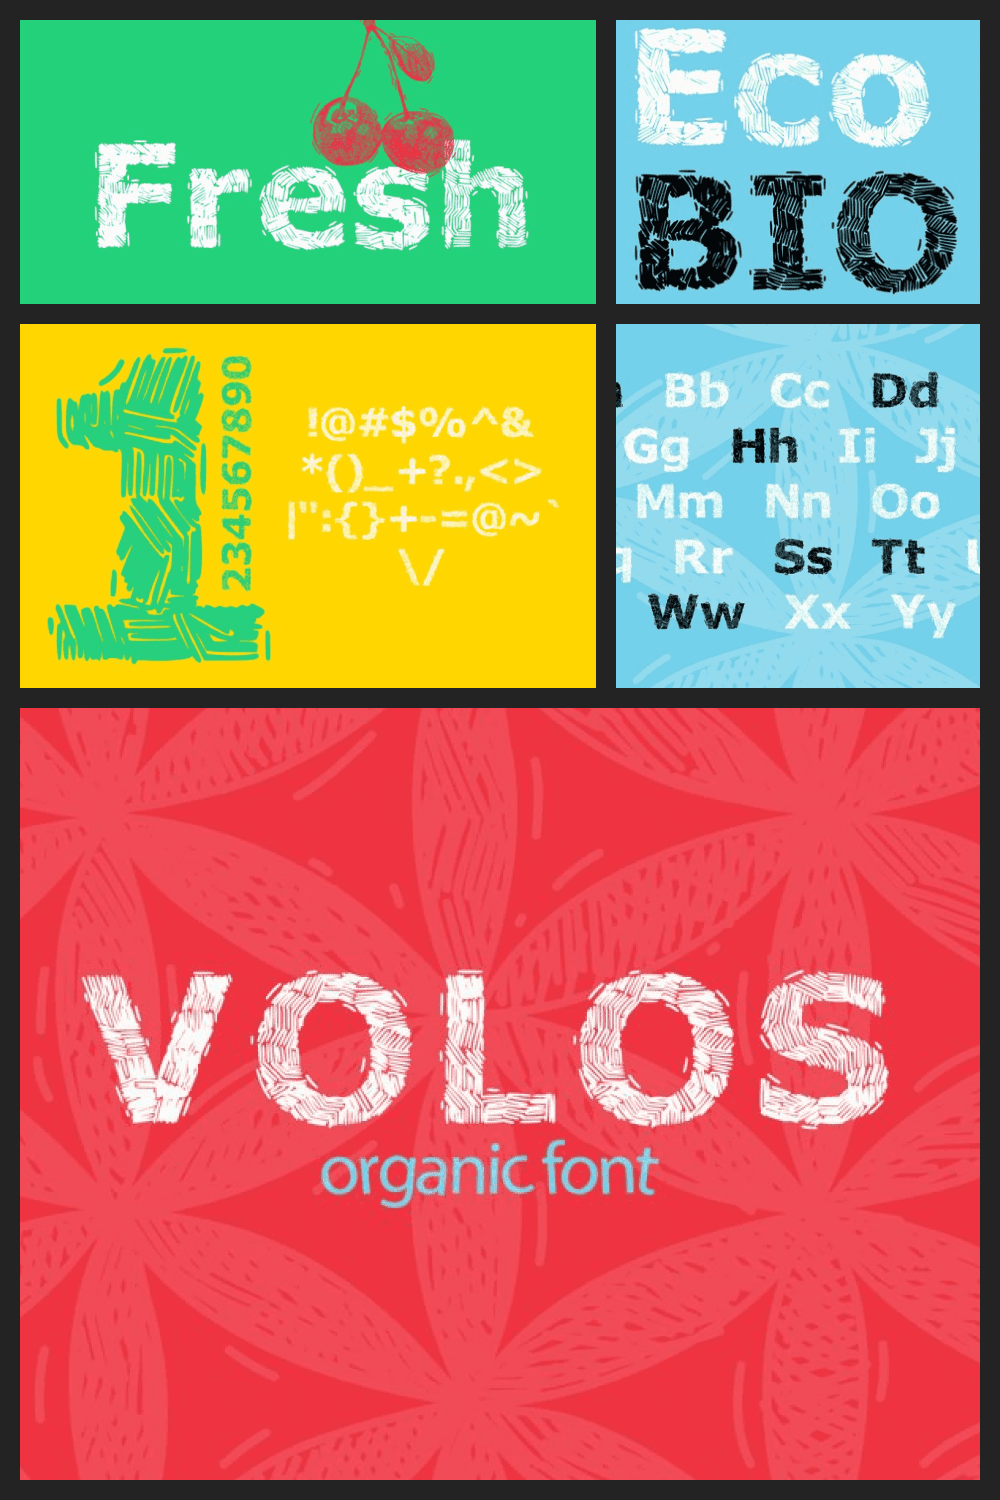 Creative font in line.